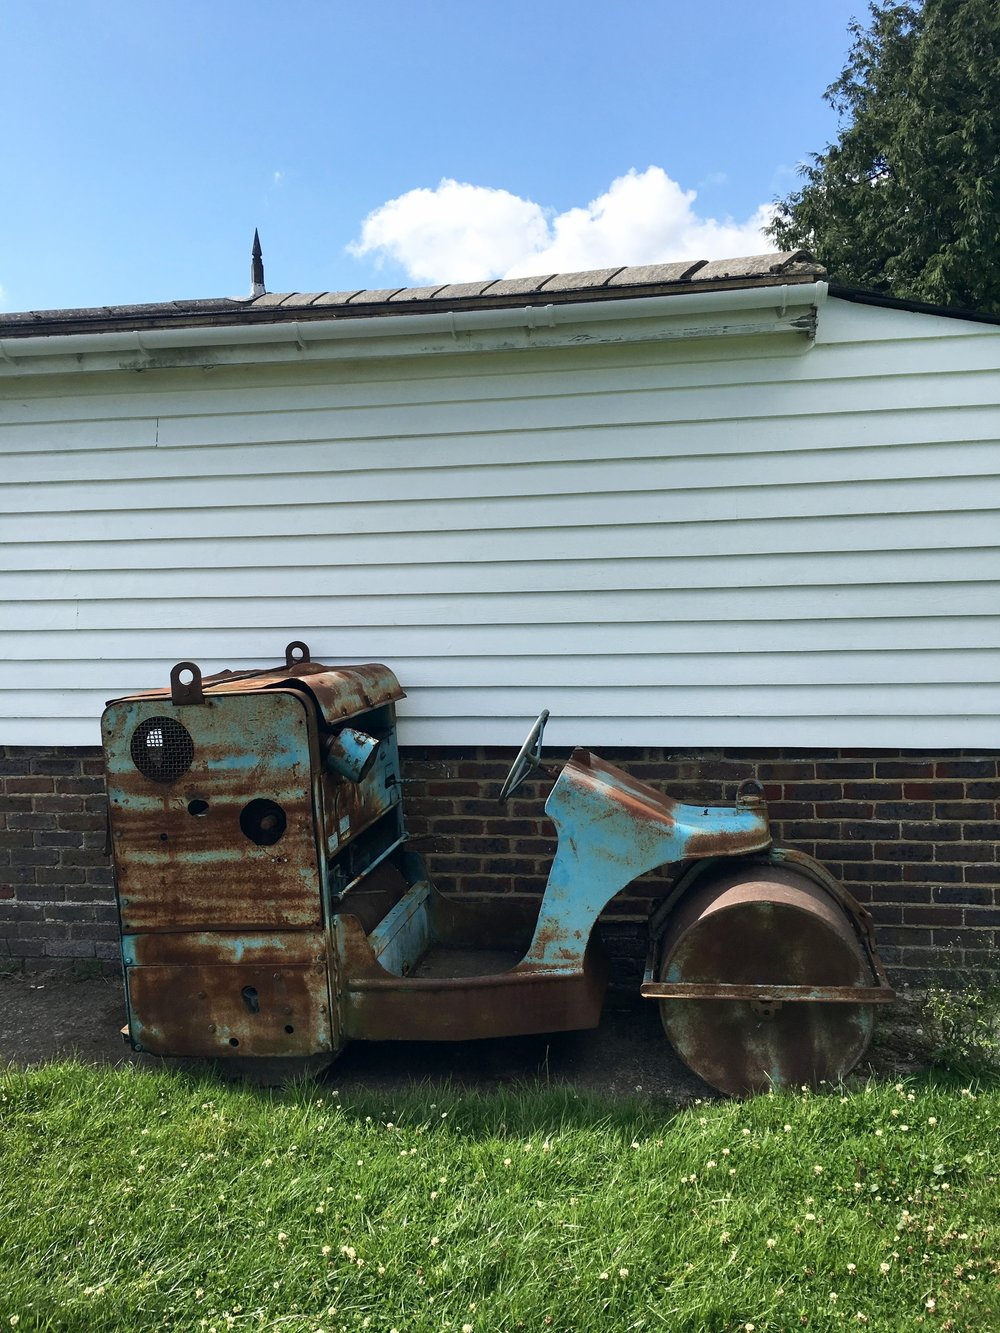 I just love this rusty old roller on Frant village green! I love the blue & rust together next to the old building, and can imagine a bride sitting there!